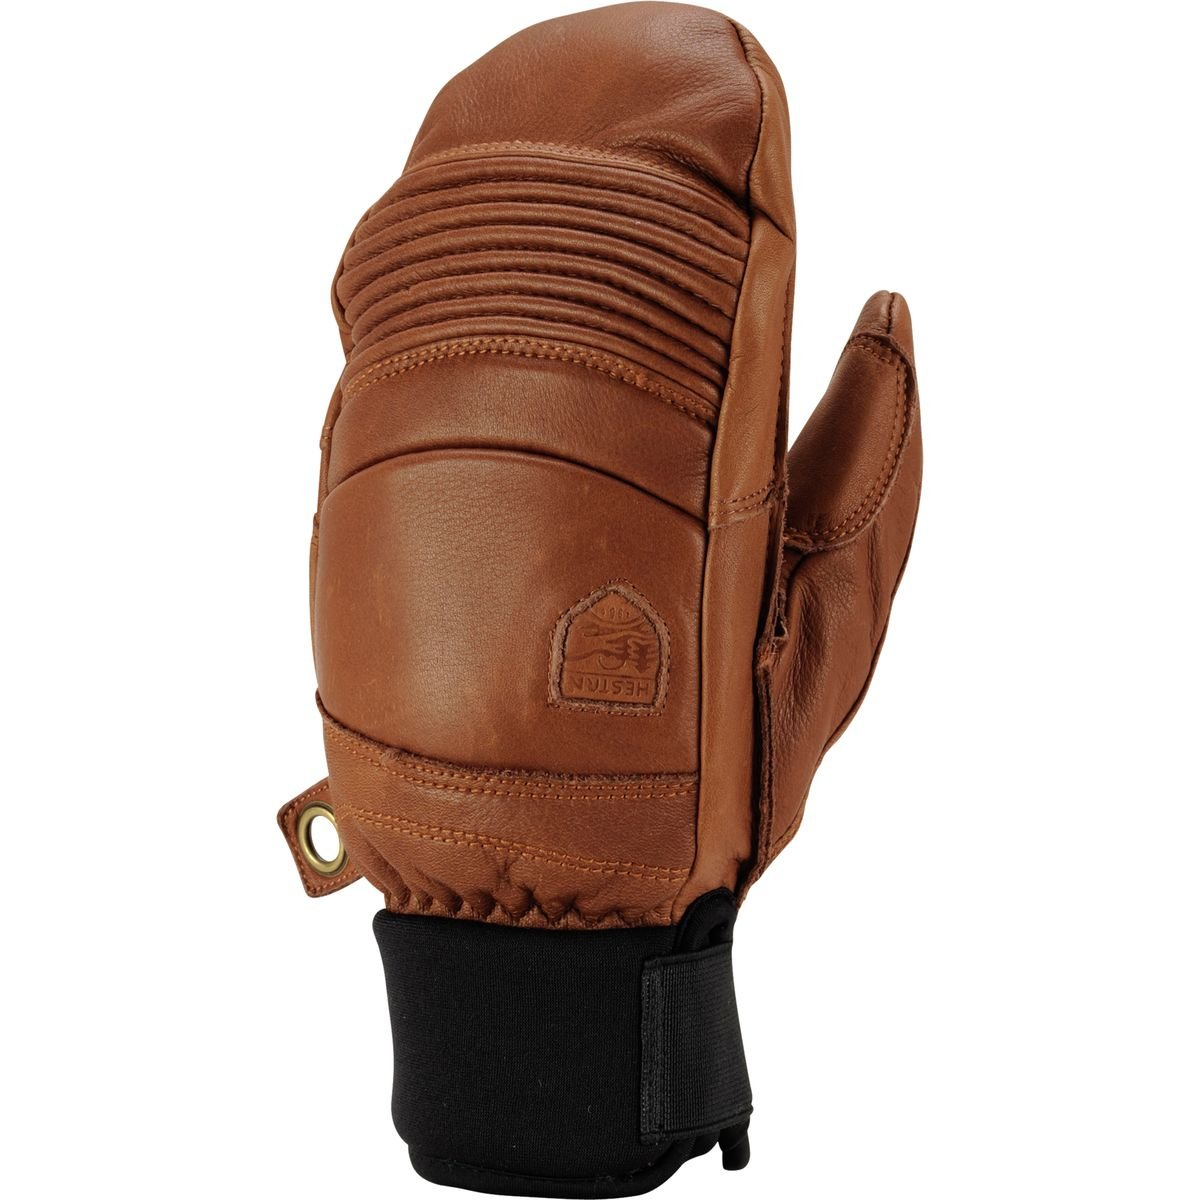 Hestra Leather Fall Line Short Ski Mitten,Brown,8 by Hestra